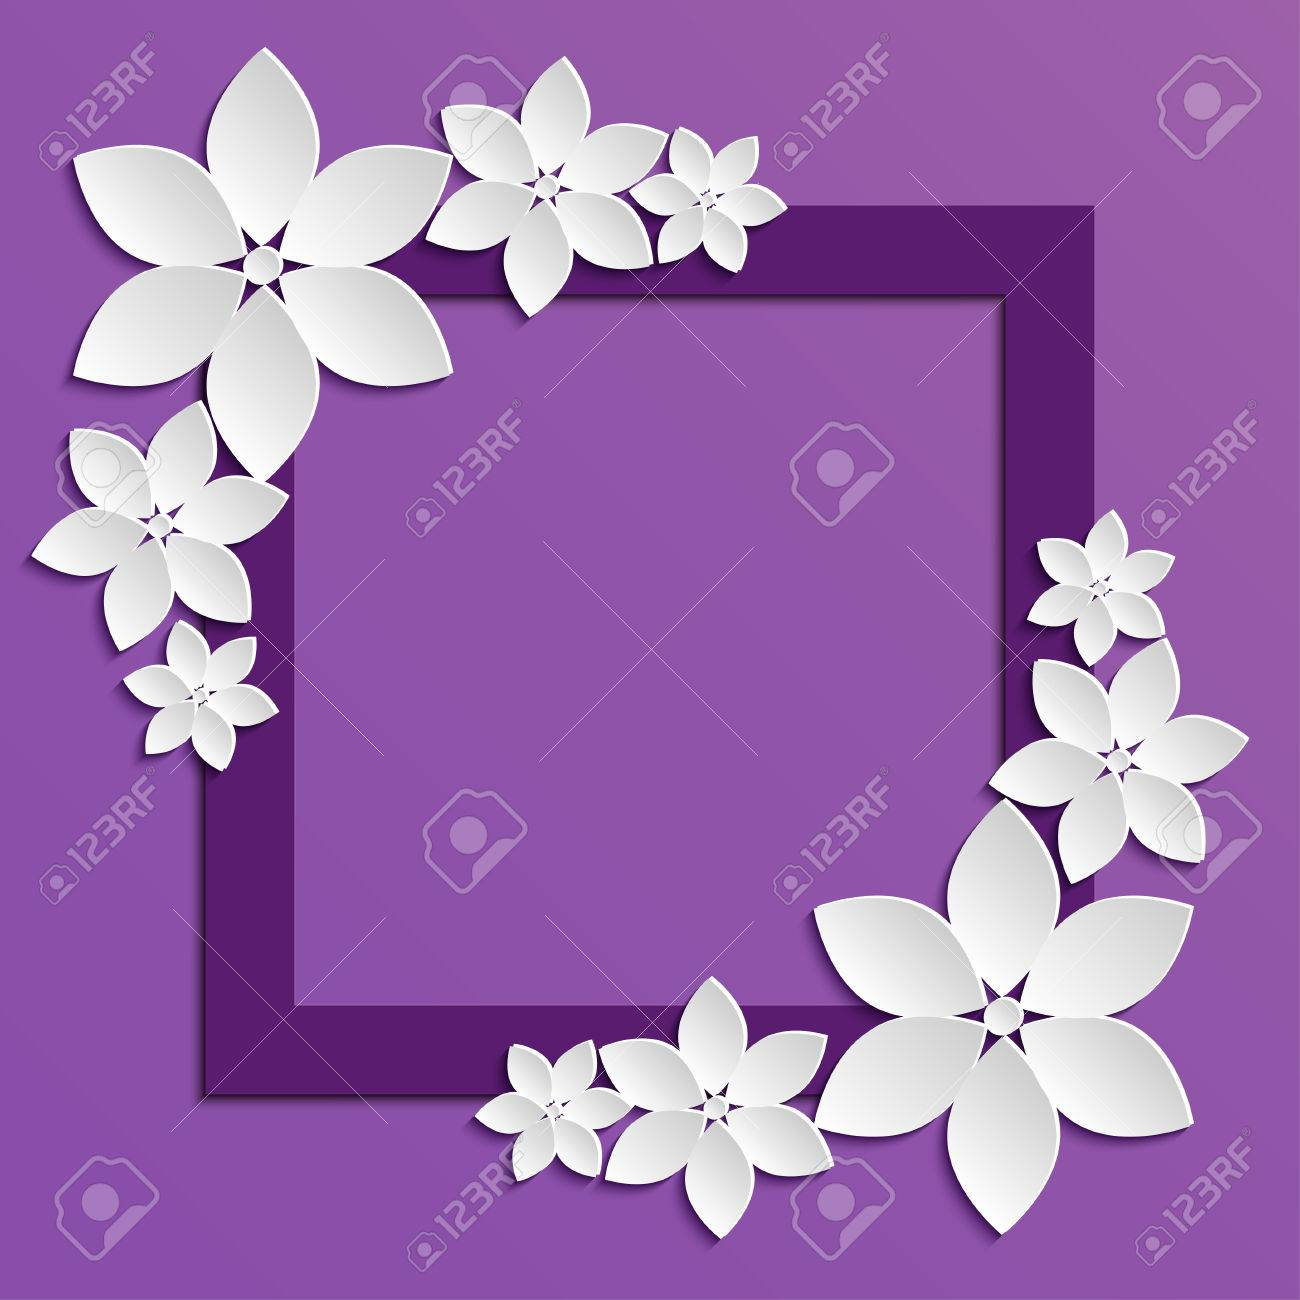 Decorative Violet Paper Cut Border With White Paper Flowers